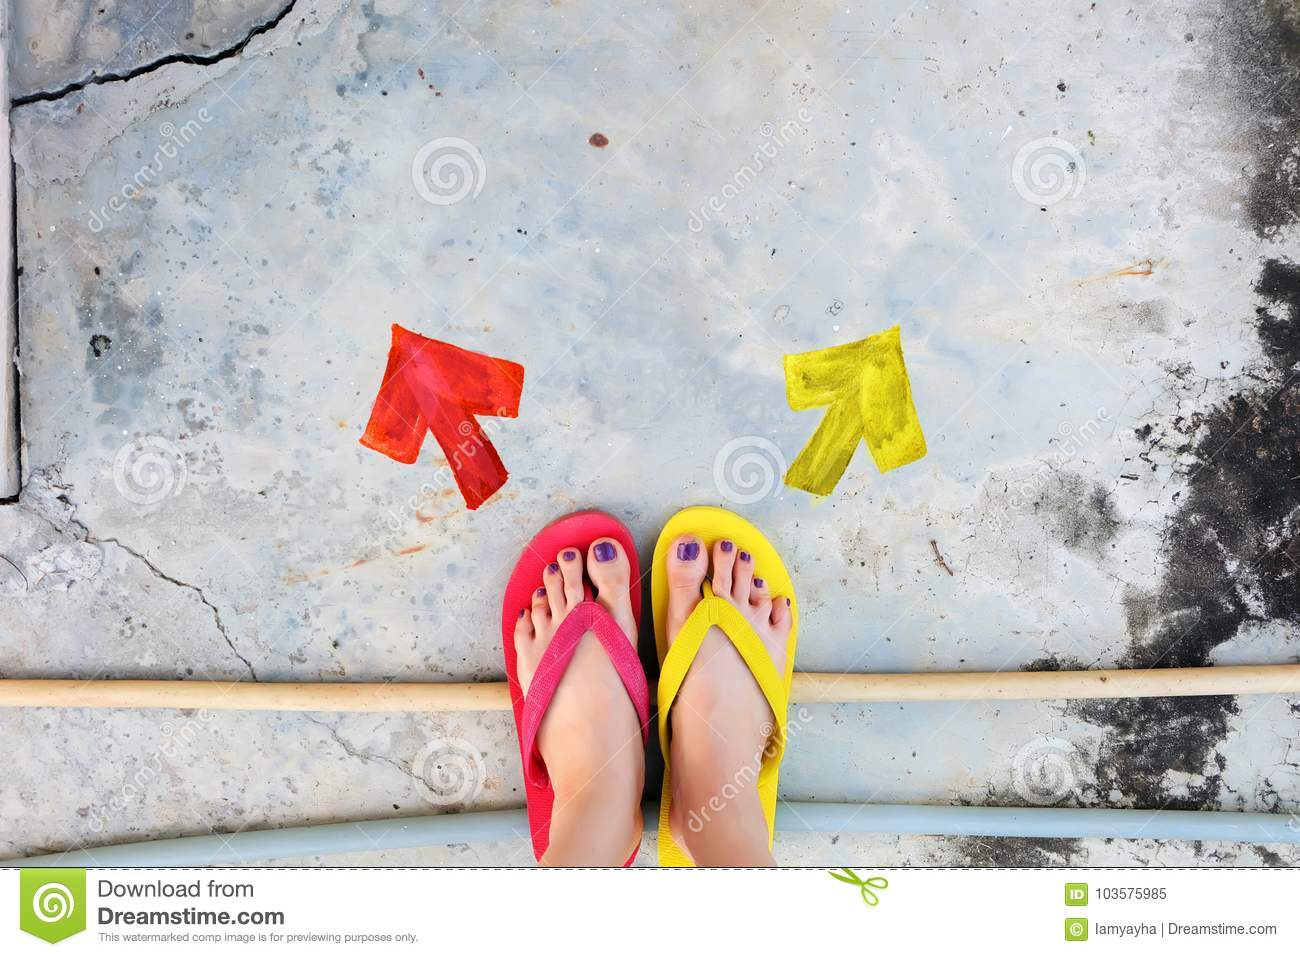 Walking Arrows Directions Drawn. Woman Wear Flip Flop Red and Yellow Standing on Cement Background